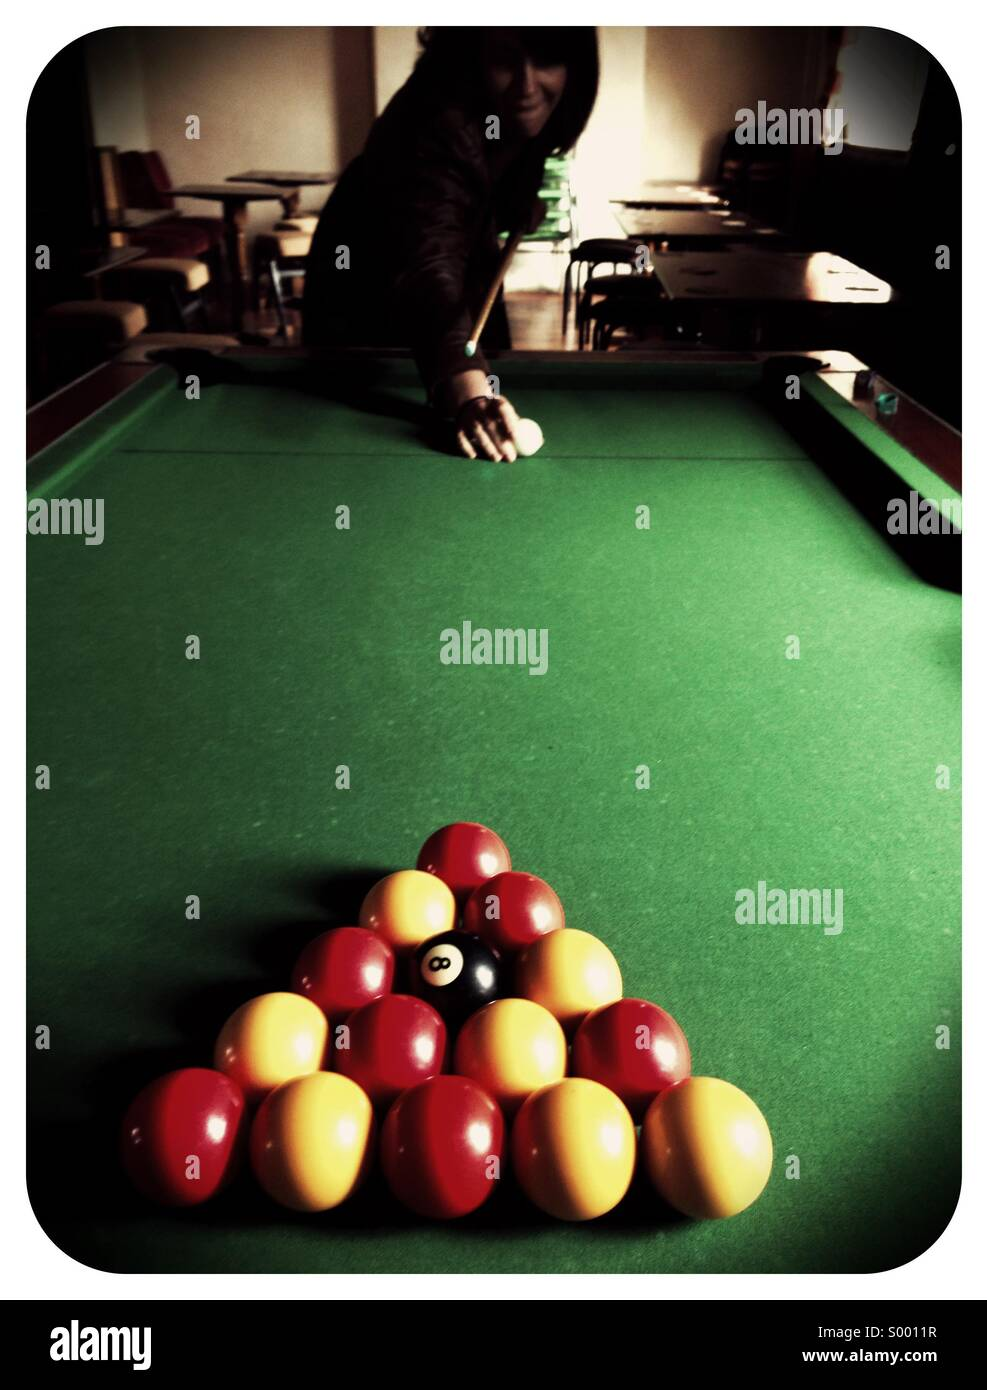 Pool spielen Stockfoto